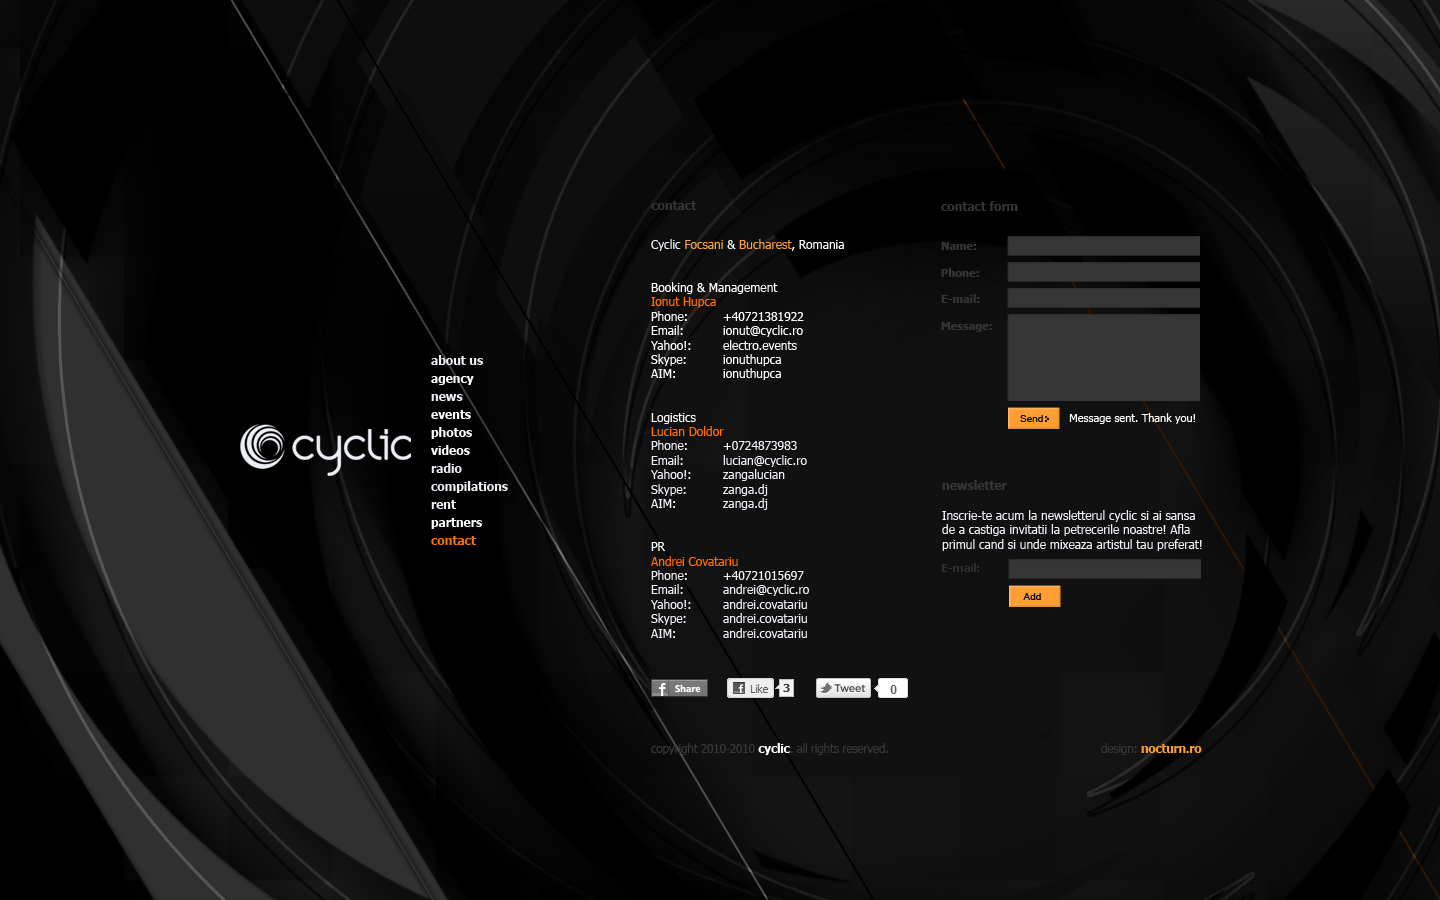 cyclic dj booking agency records label - contact page - web website design by Utopia branding agency